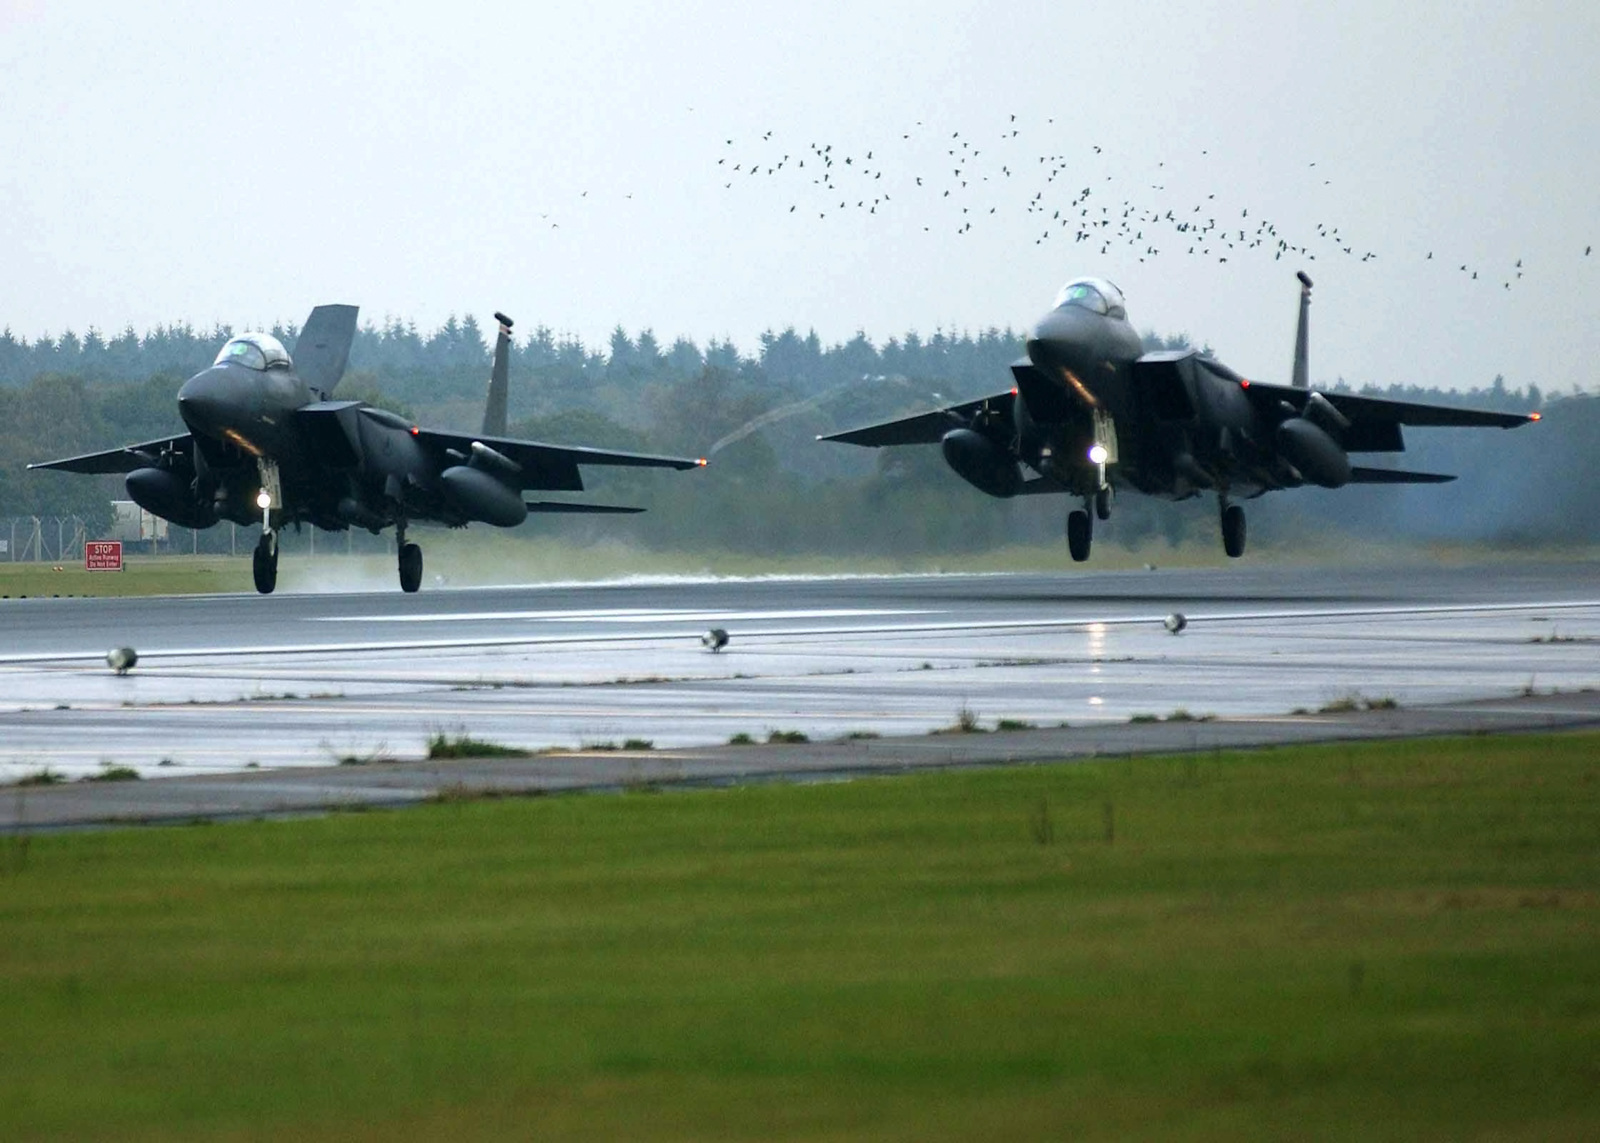 A US Air Force (USAF) 494th Fighter Squadron (FS) F-15E Strike Eagles from the 48th Fighter Wing (FW) return home to the Royal Air Force (RAF) Lakenheath, England, runaway after completing a sortie